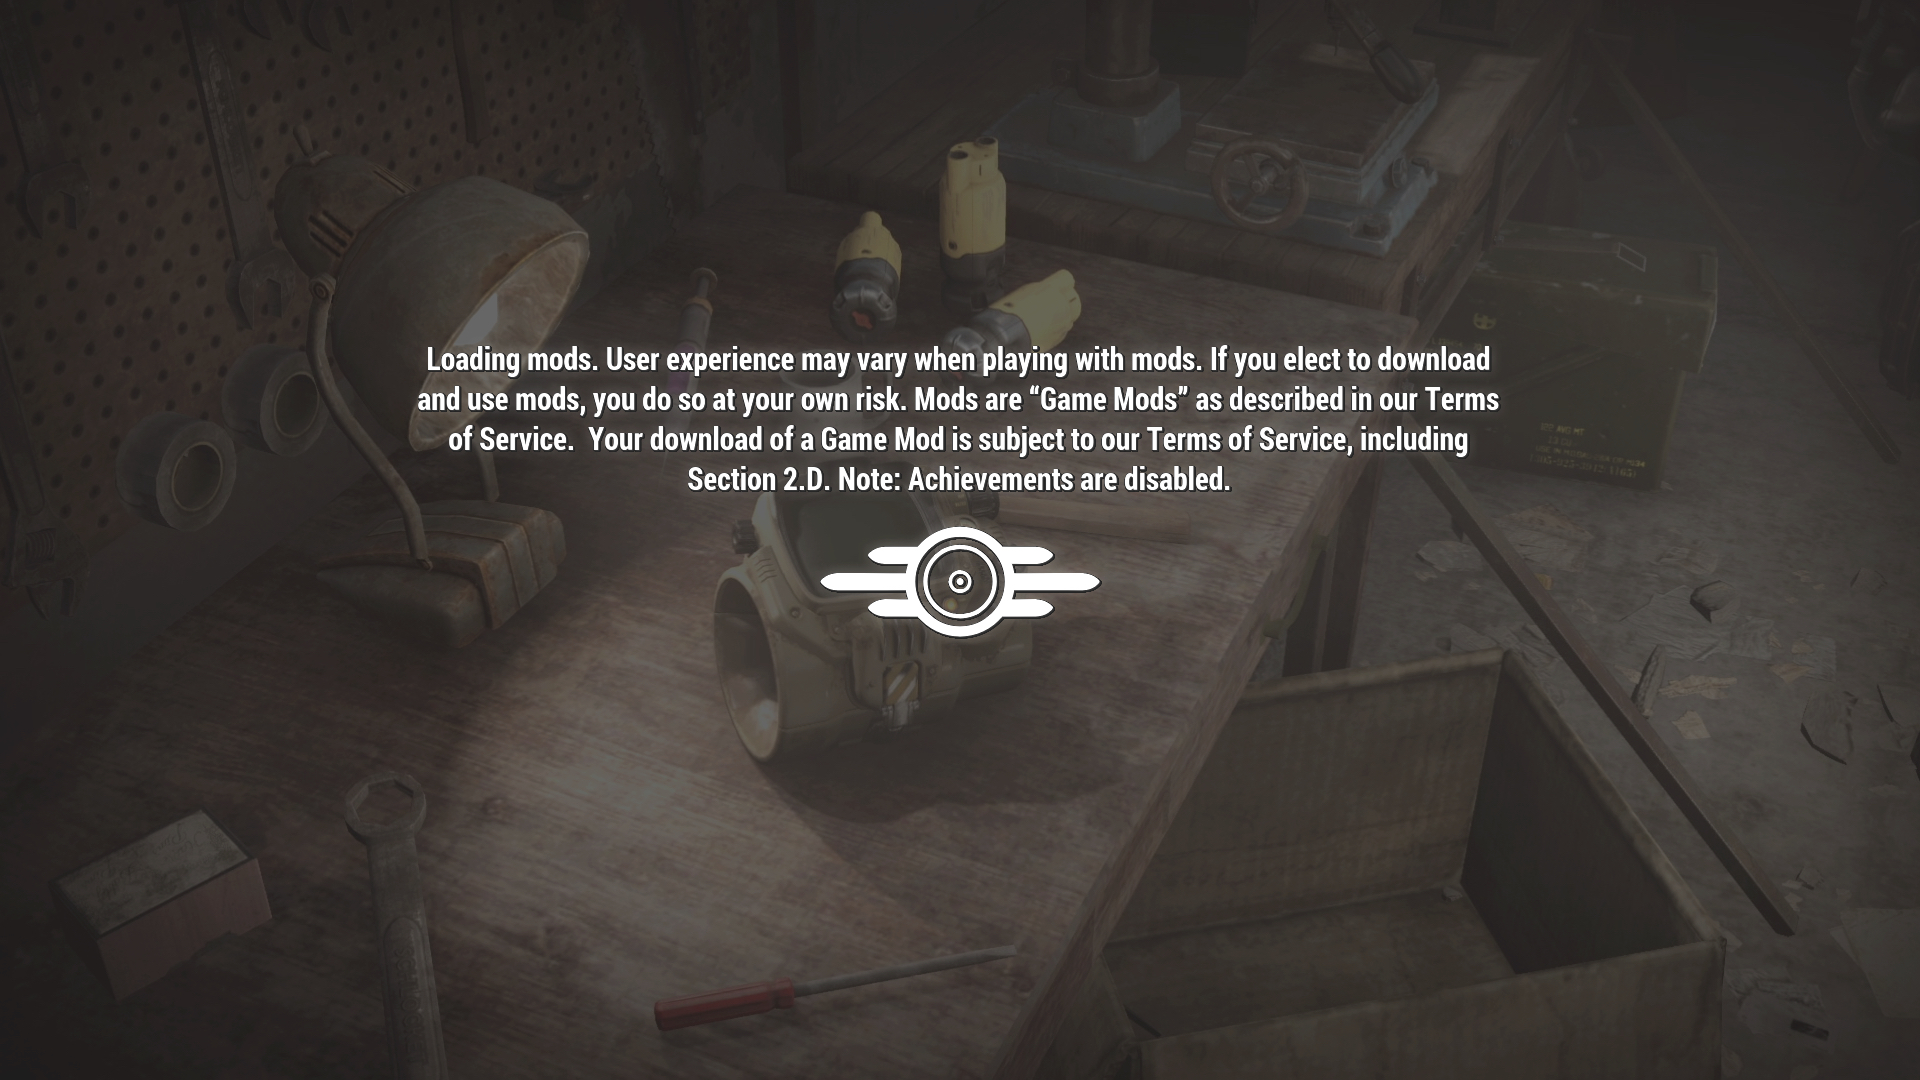 PS4 Fallout 4 Mods Release: 5 Things to Know